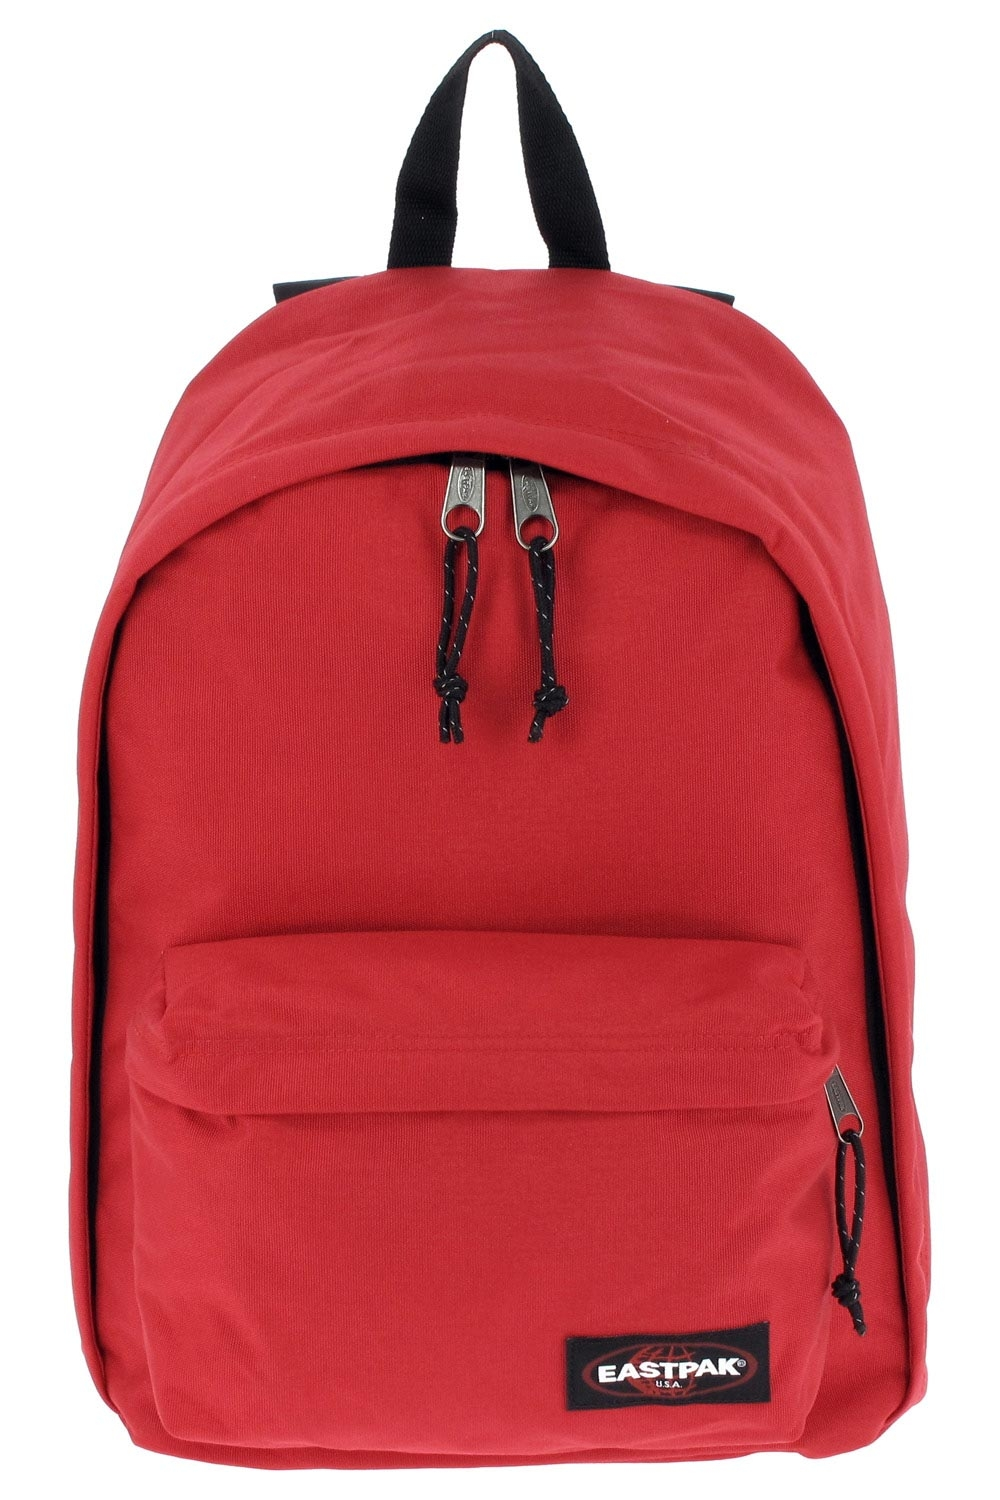 Dos Out Sac Eastpak A Office Ek767 Rouge Of gqxHBxfw